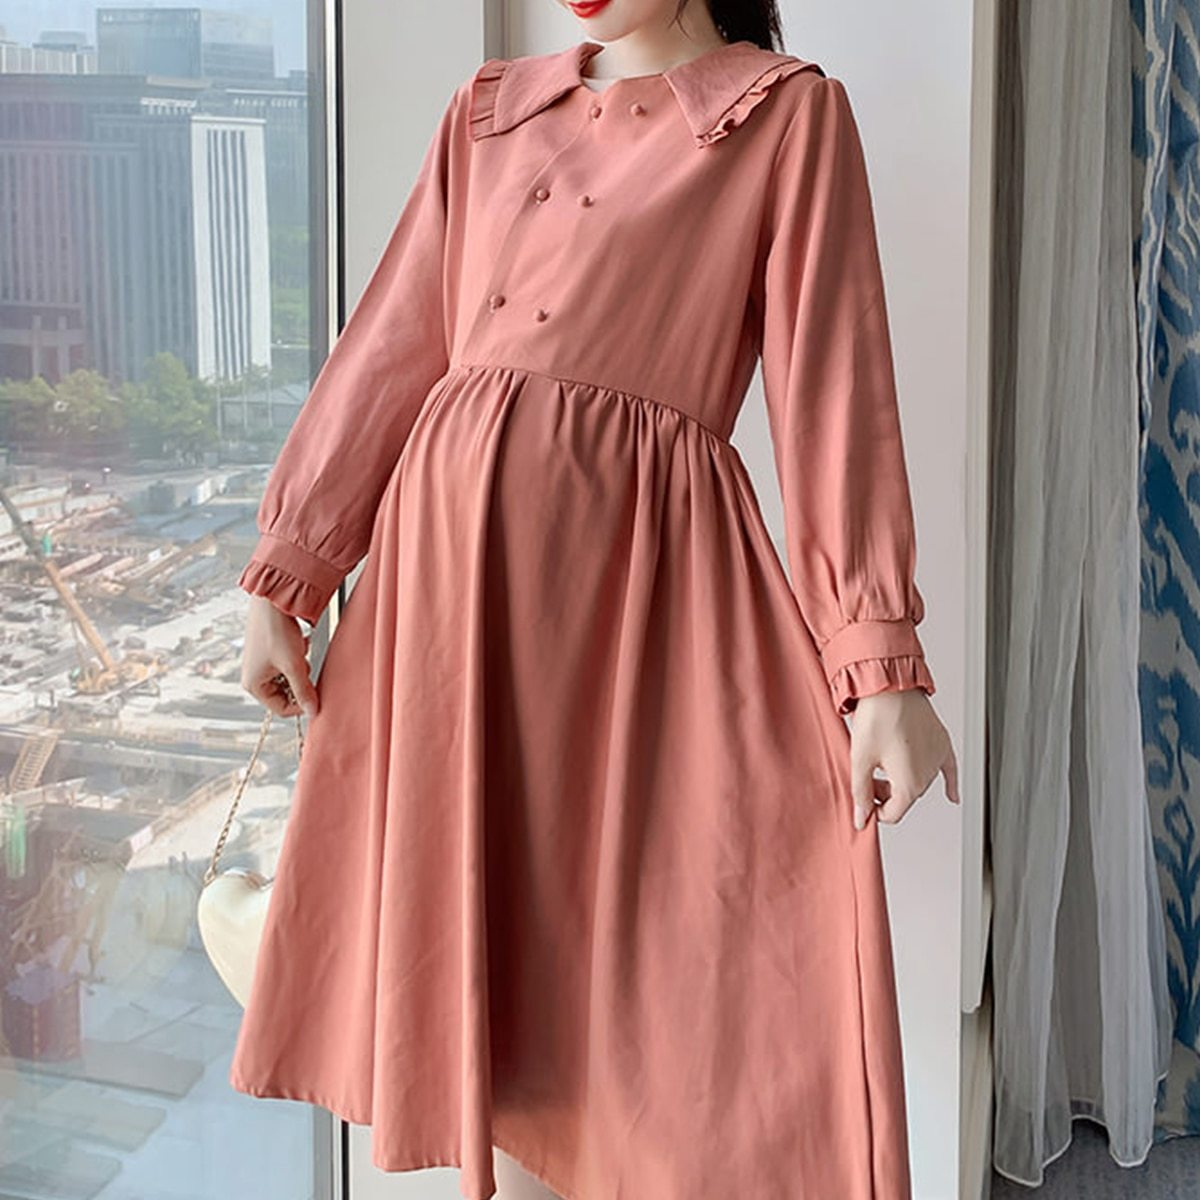 Maternity Dress Long Sleeve Solid Color Loose Dress image 5